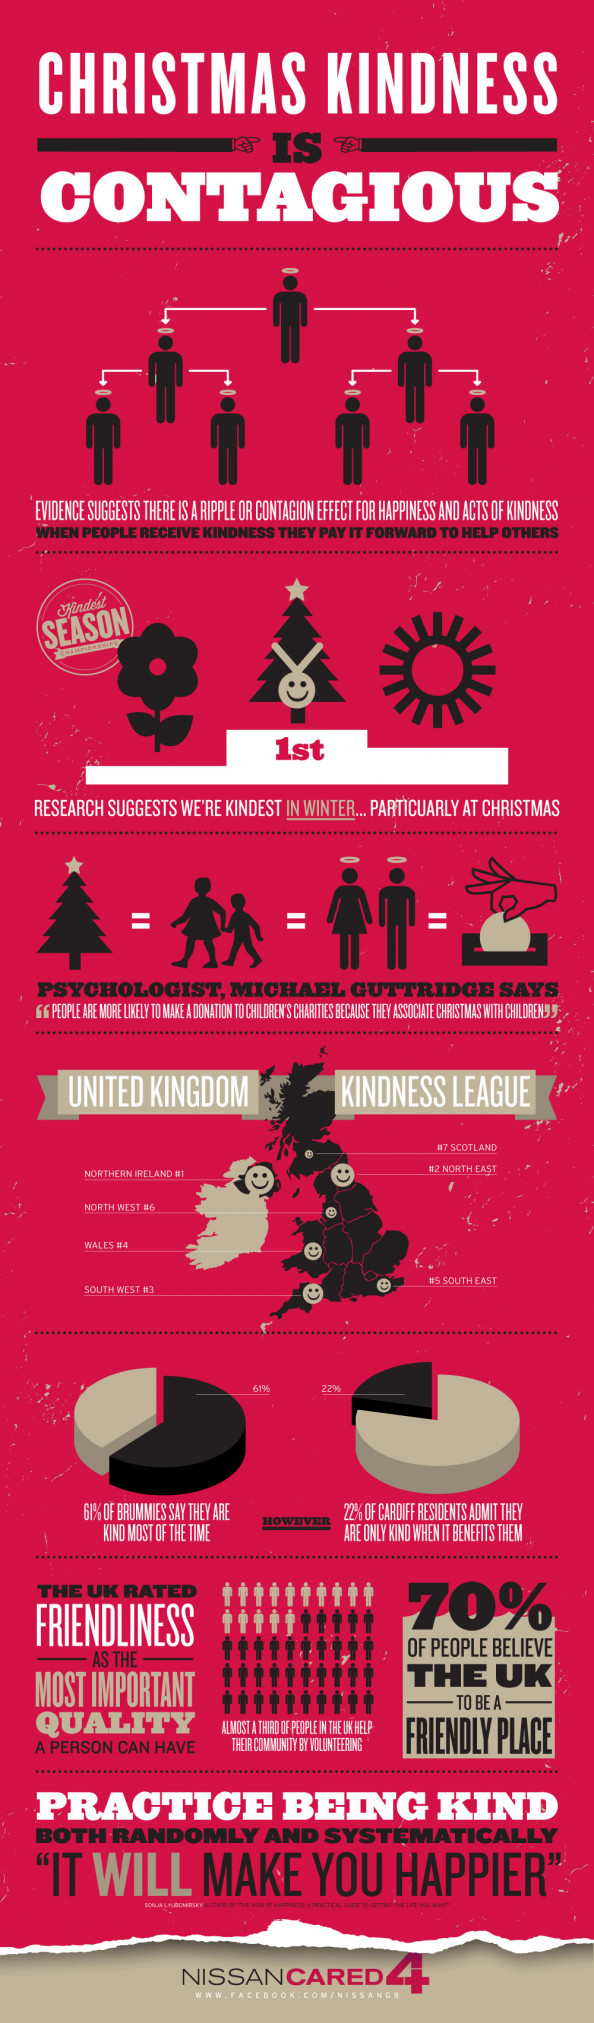 Christmas Kindness is Contagious Infographic